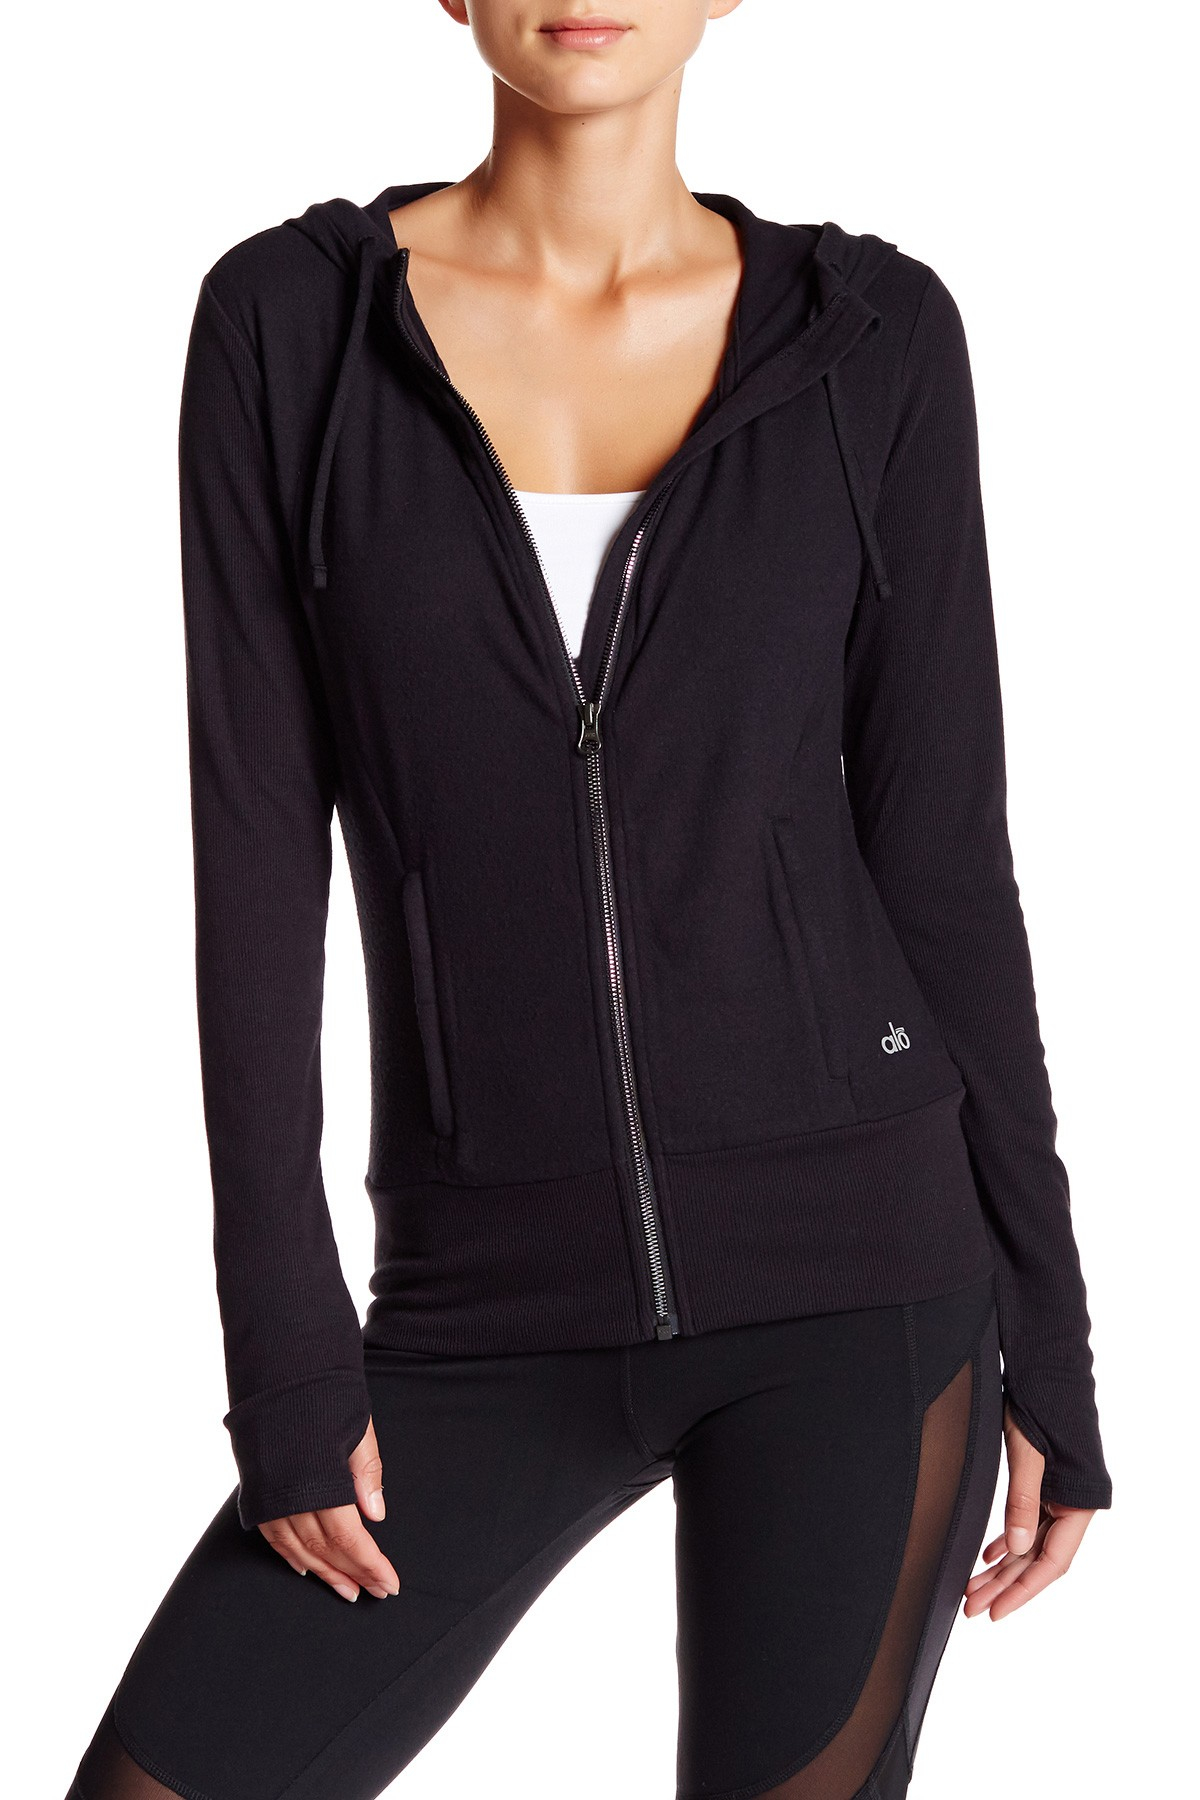 Yunoga Women's Lightweight Athletic Full Zip Running Yoga Jacket Women Shop Best Sellers· Deals of the Day· Fast Shipping· Read Ratings & Reviews2,,+ followers on Twitter.